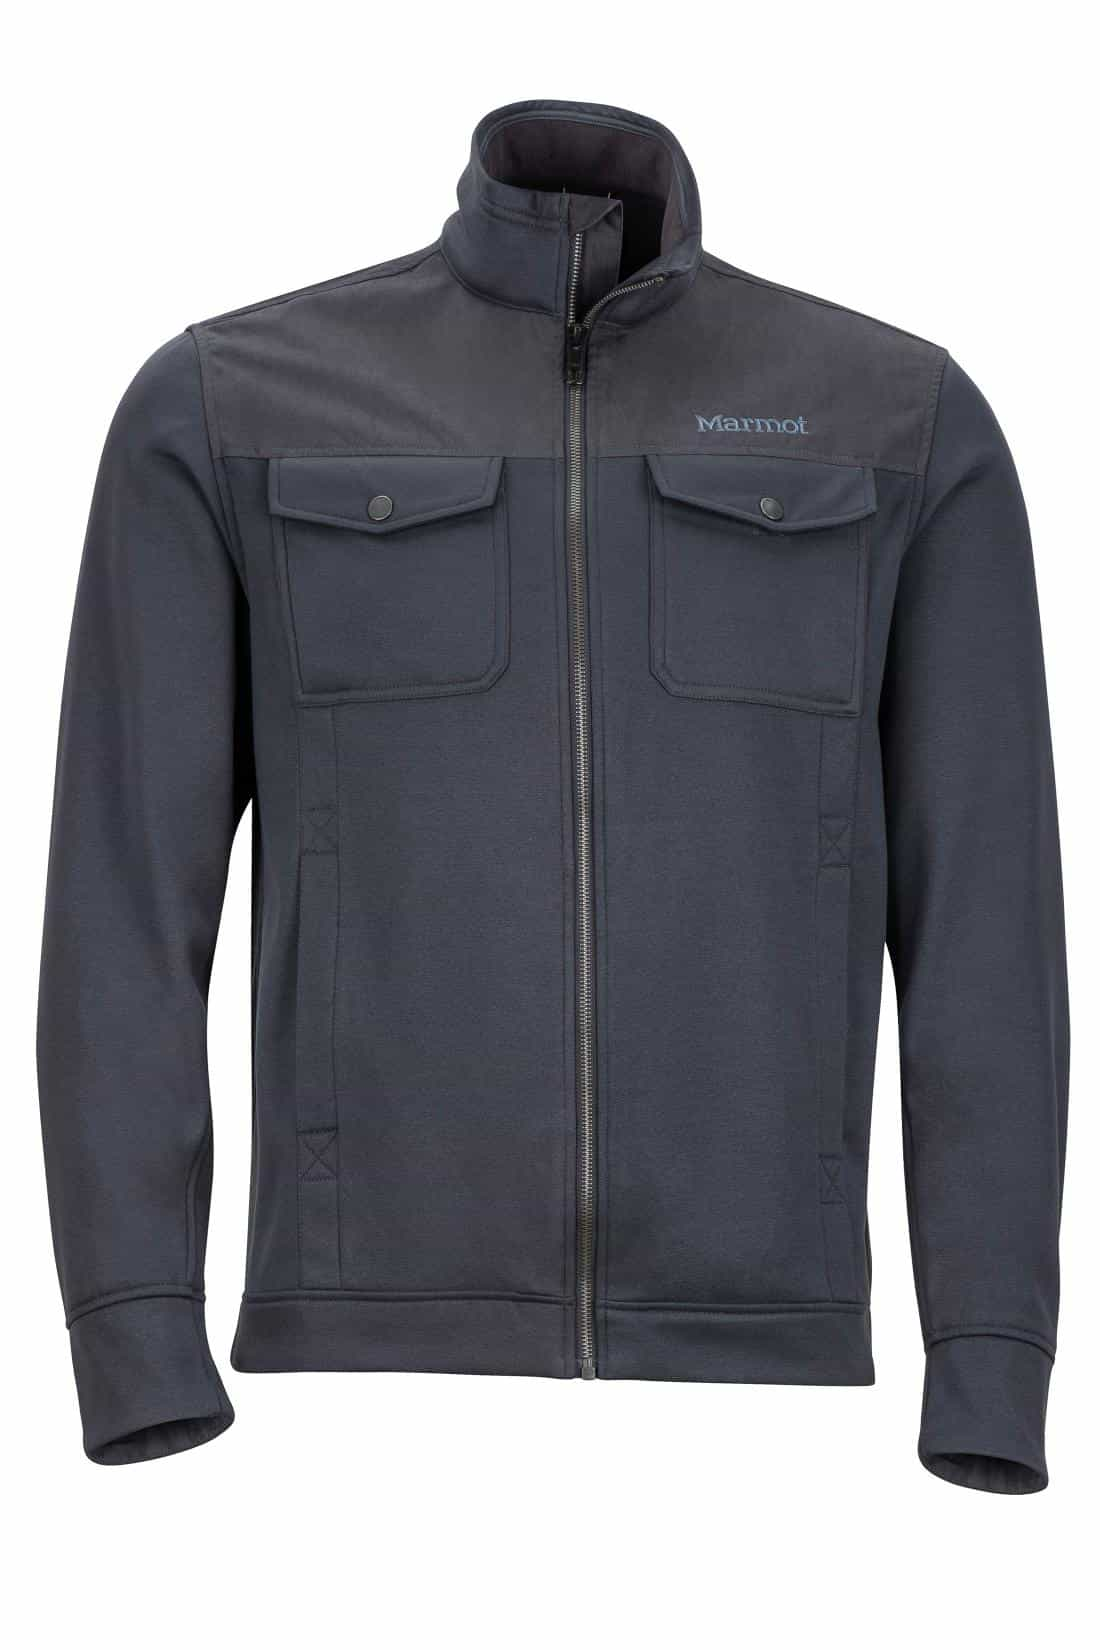 Marmot-Matson Jacket - Men's